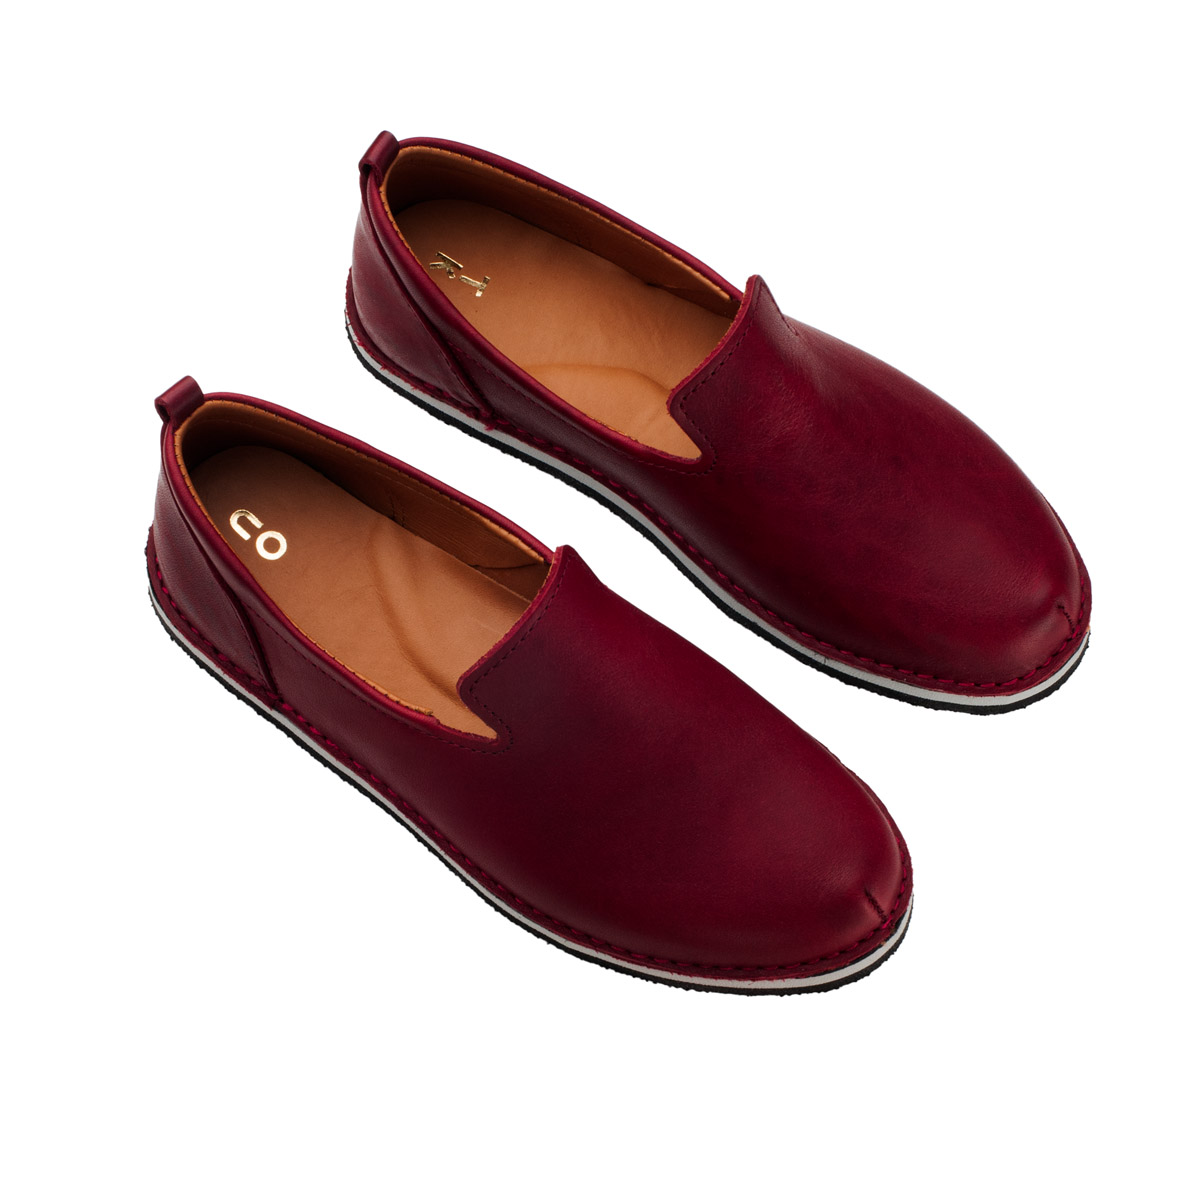 London leather loafers